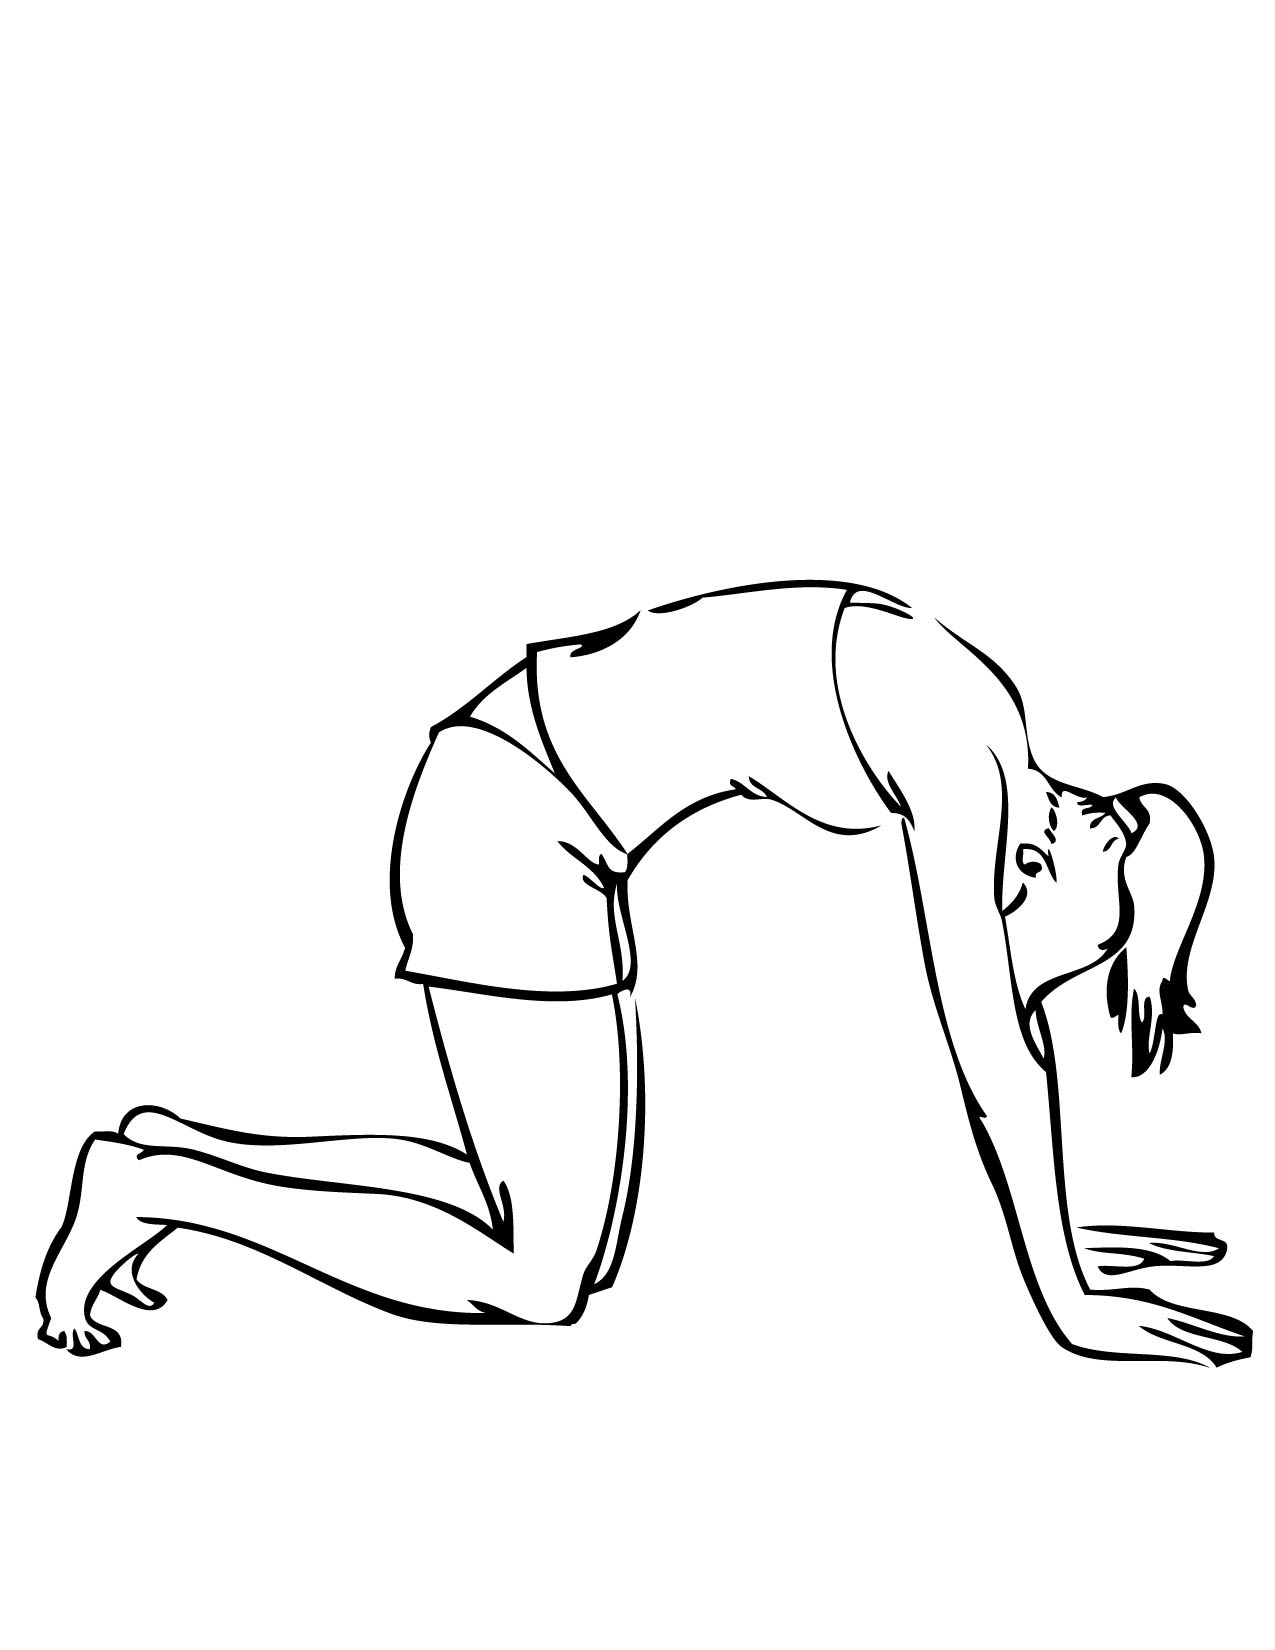 Cat Pose Coloring Page - Handipoints